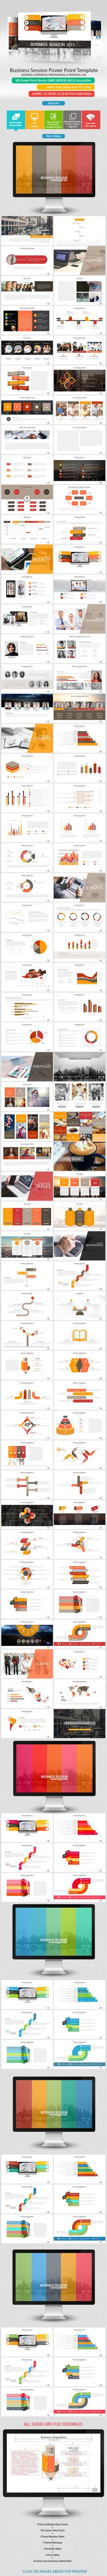 Business Session Power Point Presentation (PowerPoint Templates)